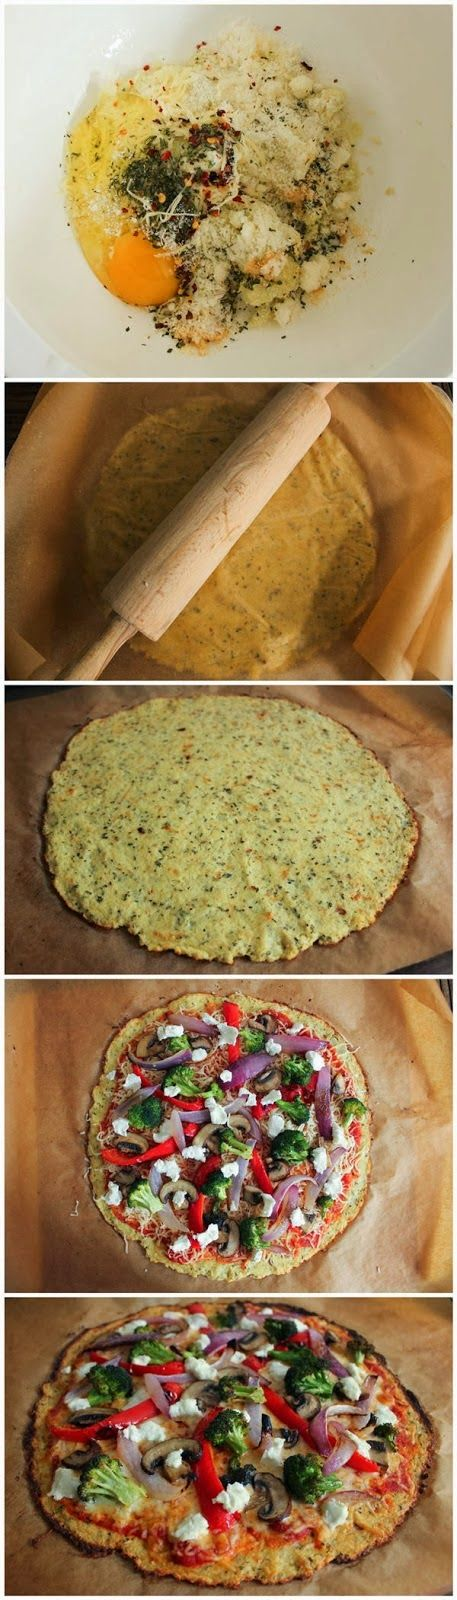 Cauliflower Pizza Crust with Roasted Vegetables and Goat Cheese